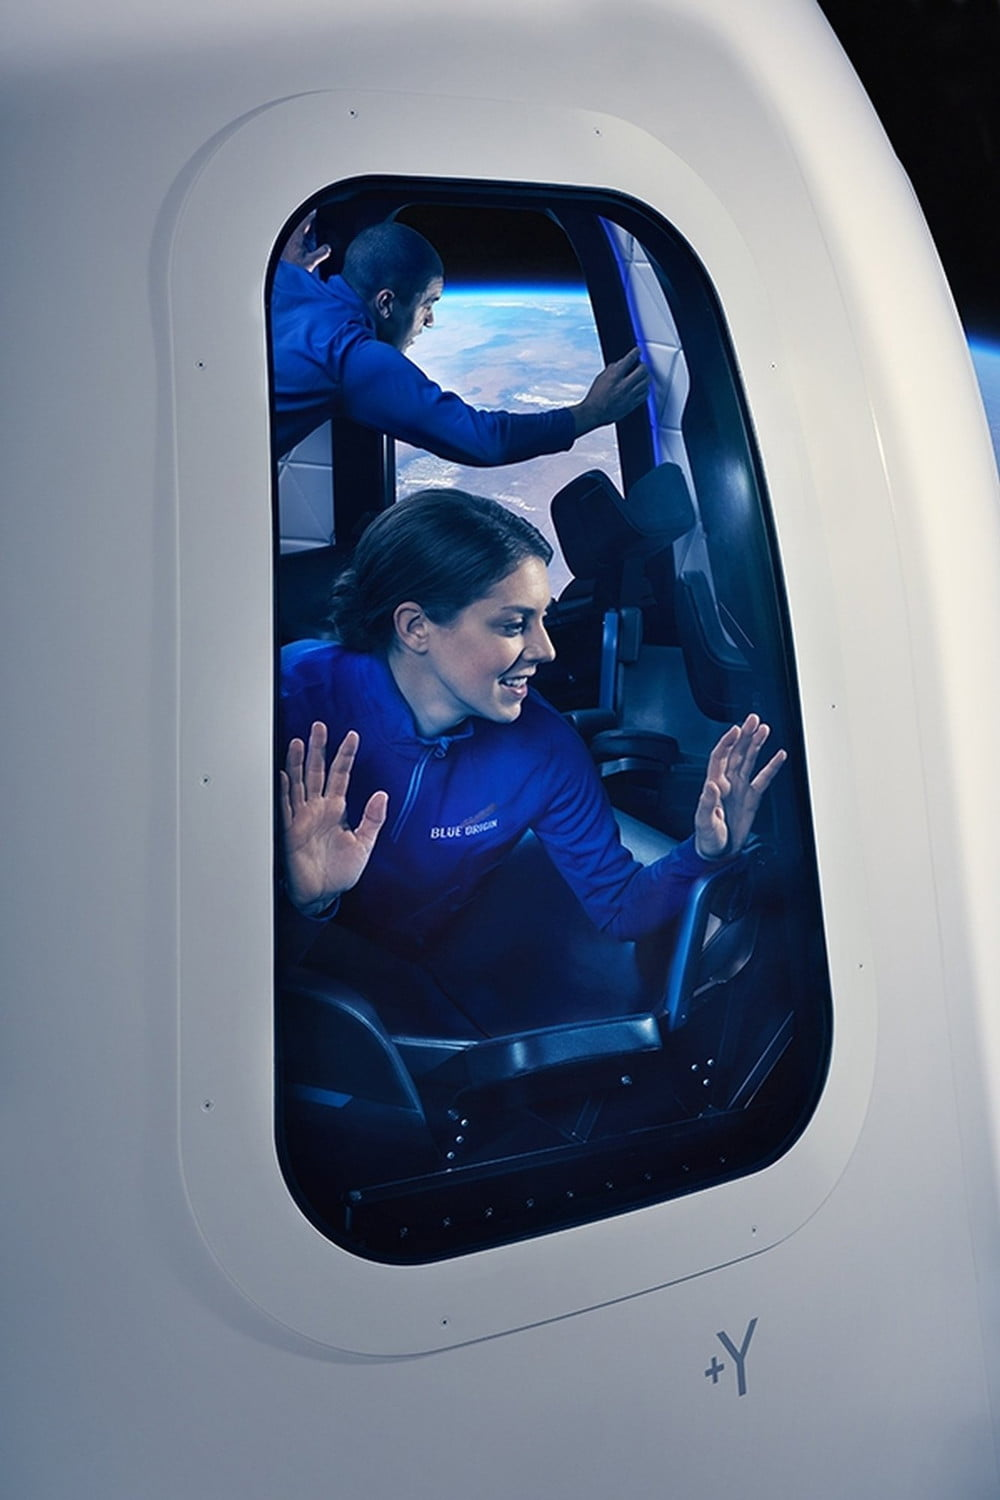 The Blue Origin reveals the highest bid to date for the first rocket voyage